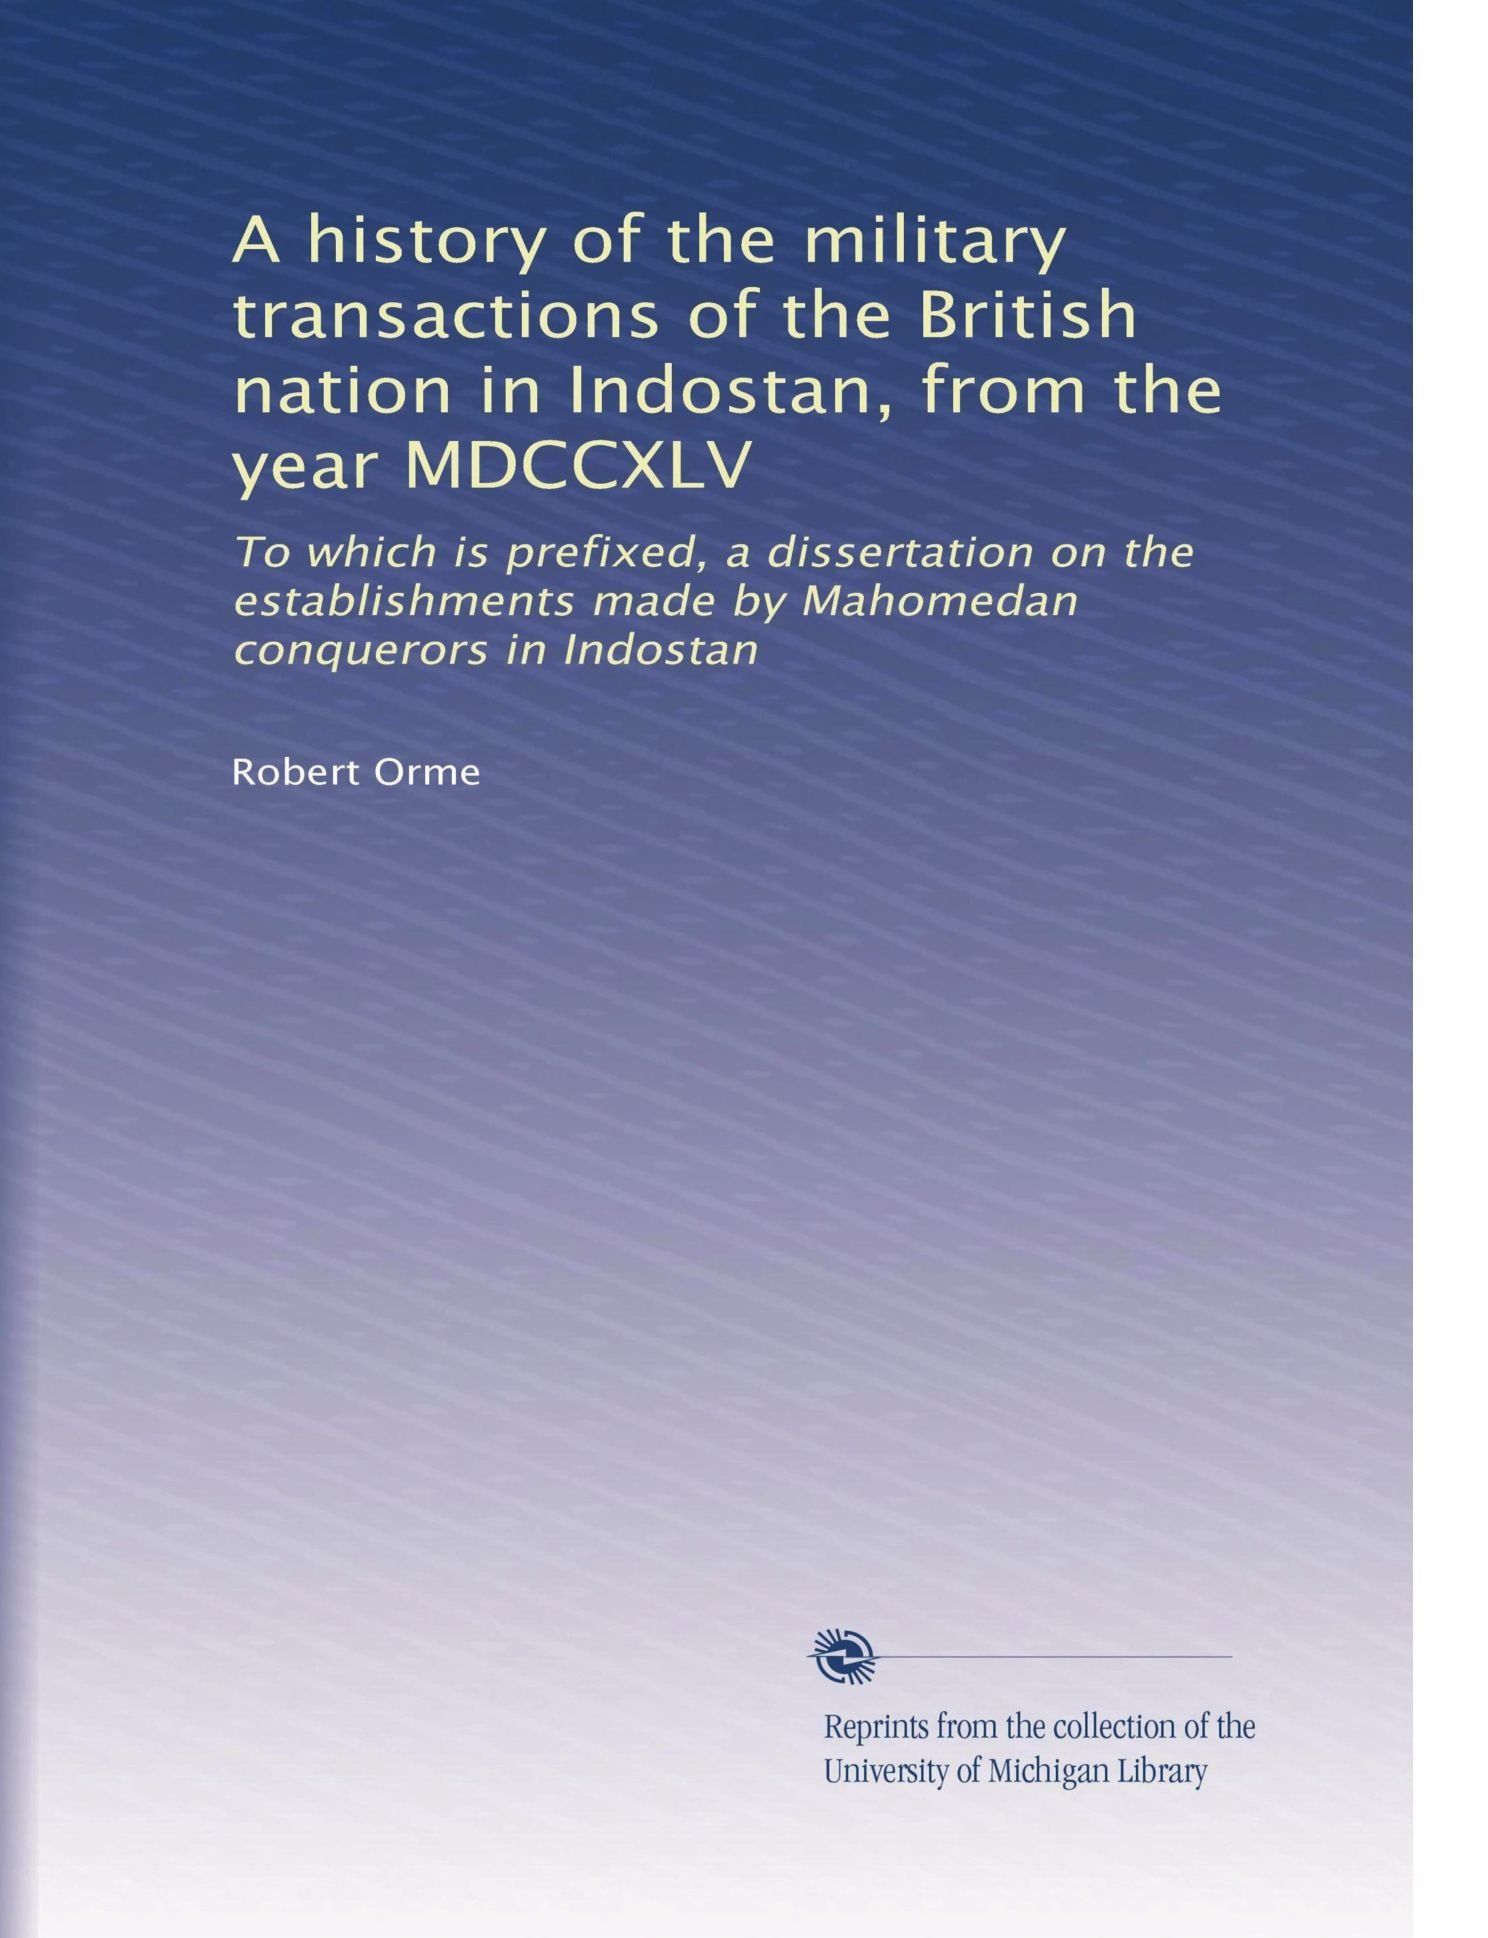 Read Online A history of the military transactions of the British nation in Indostan, from the year MDCCXLV: To which is prefixed, a dissertation on the establishments made by Mahomedan conquerors in Indostan PDF